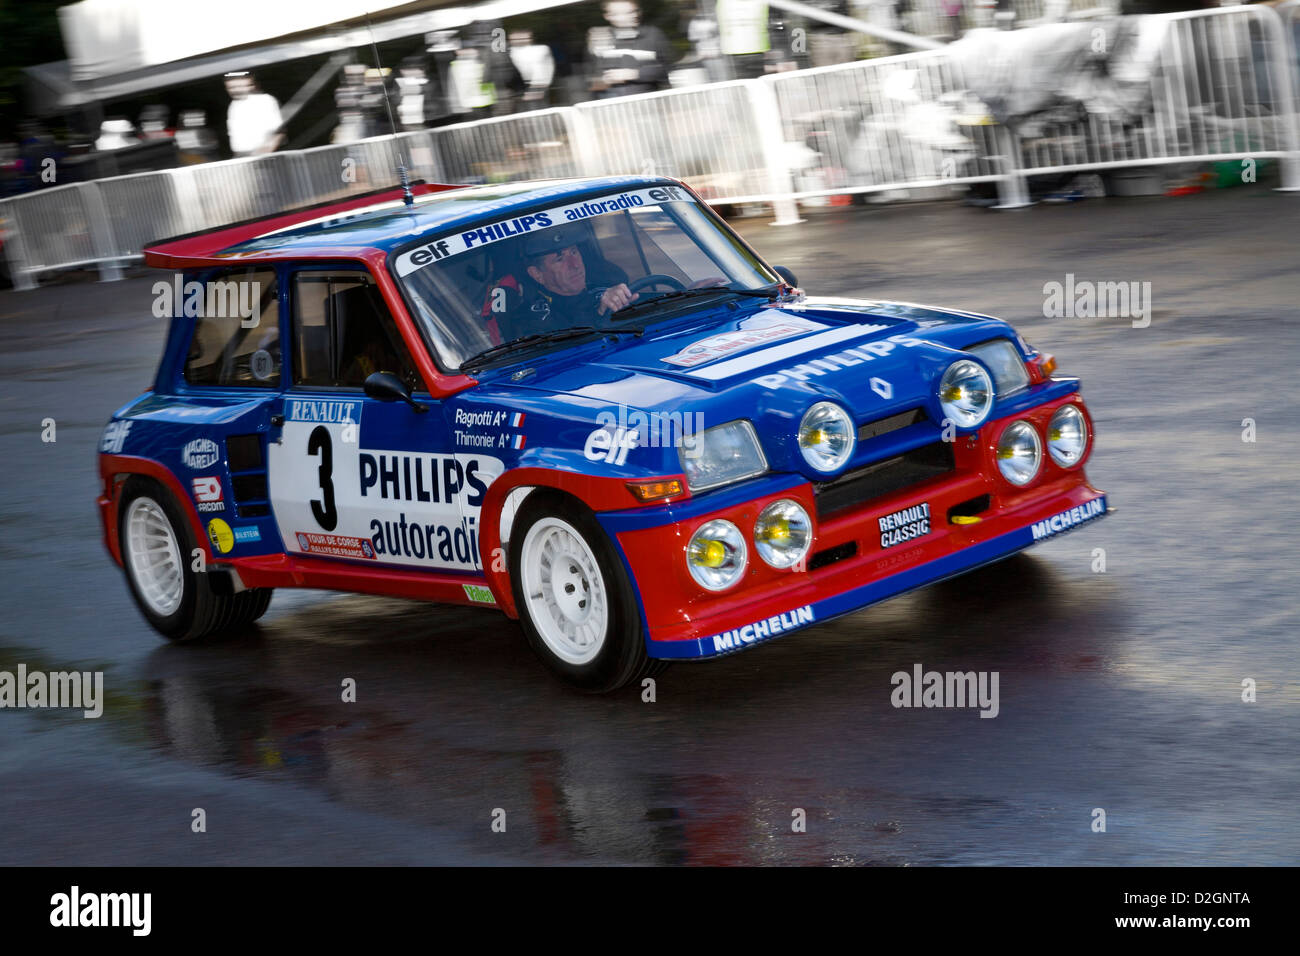 1985 renault 5 maxi turbo with driver jean ragnotti in the paddock at stock photo 53228794 alamy. Black Bedroom Furniture Sets. Home Design Ideas